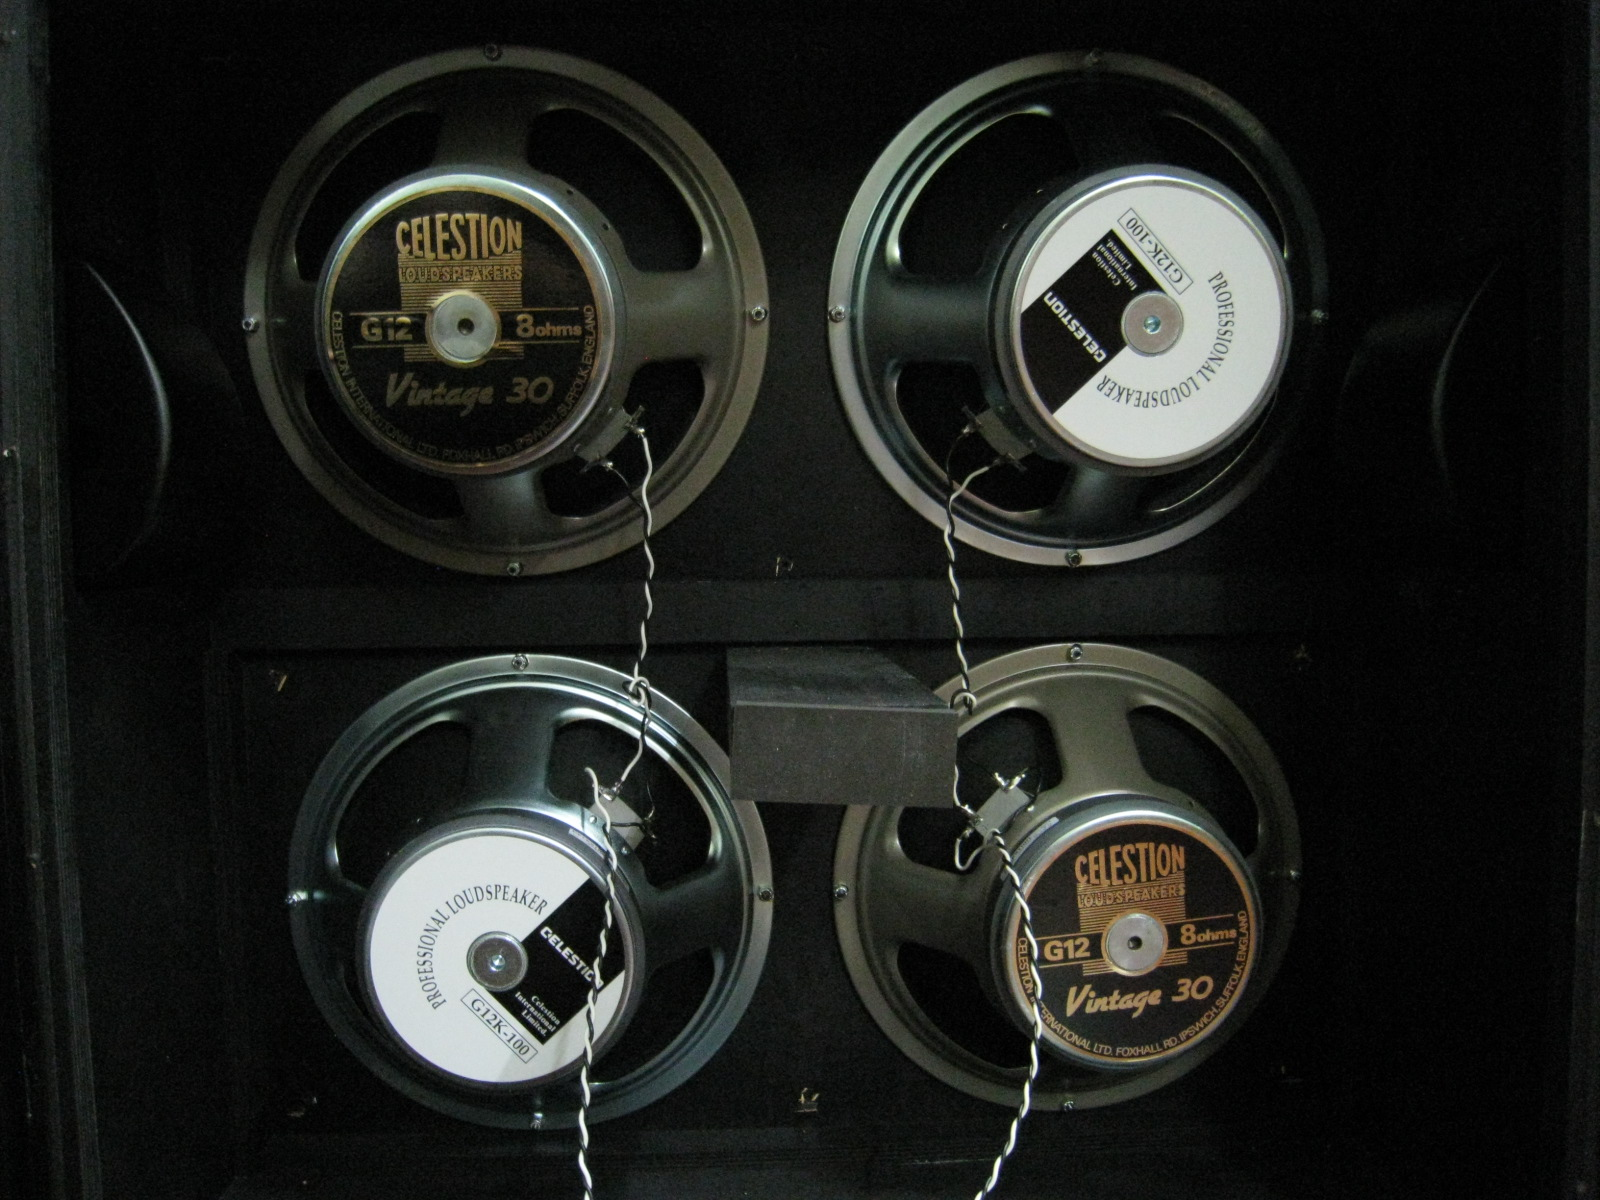 parallel wiring diagram speakers warn winch 4 solenoid guitar gear acquisition syndrome: mesa/boogie stiletto traditional 4x12